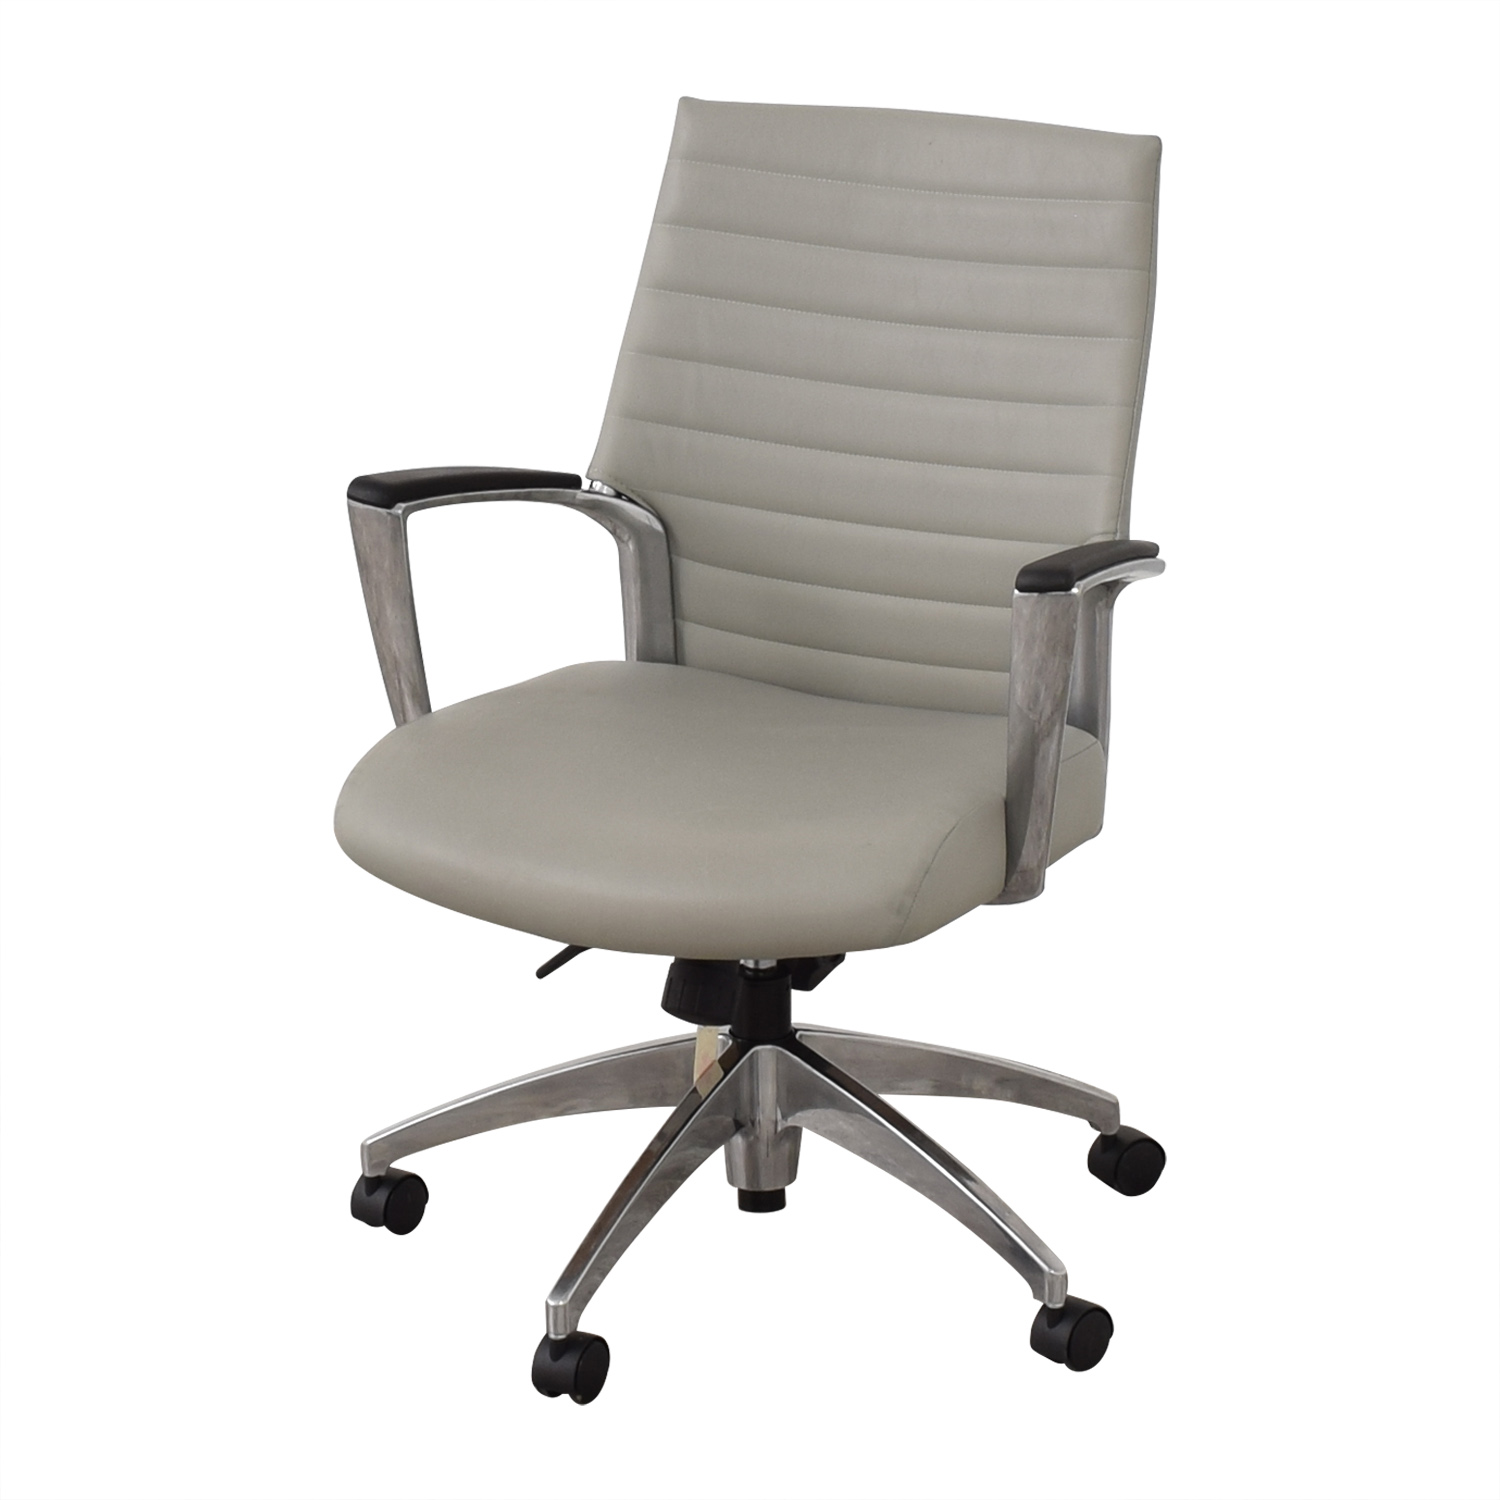 buy Global Accord Upholstered Medium Back Tilter Chair Global Home Office Chairs